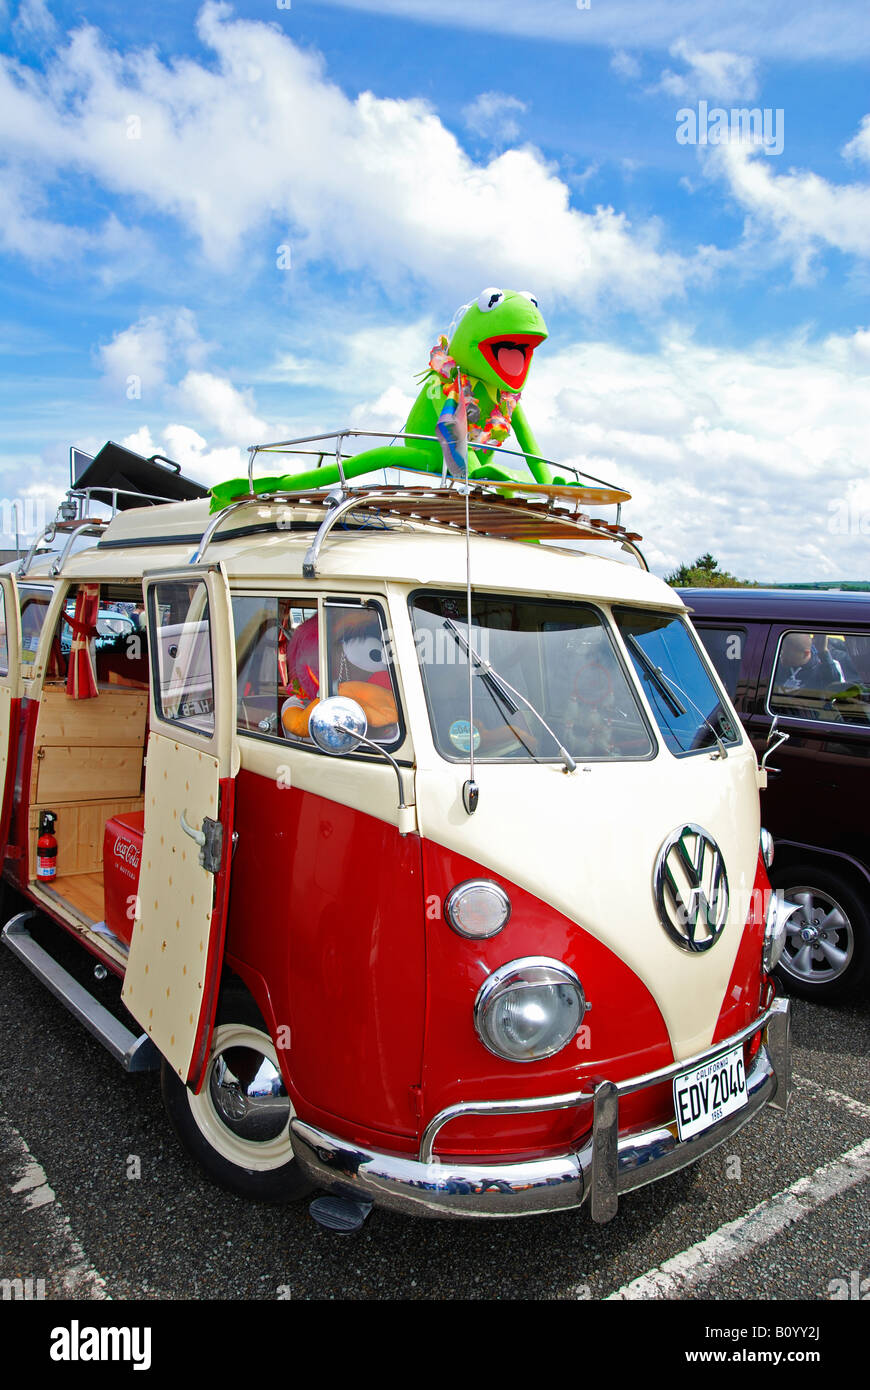 a volkswagen camper van at the annual 'run to the sun' event at newquay in cornwall,england,uk - Stock Image